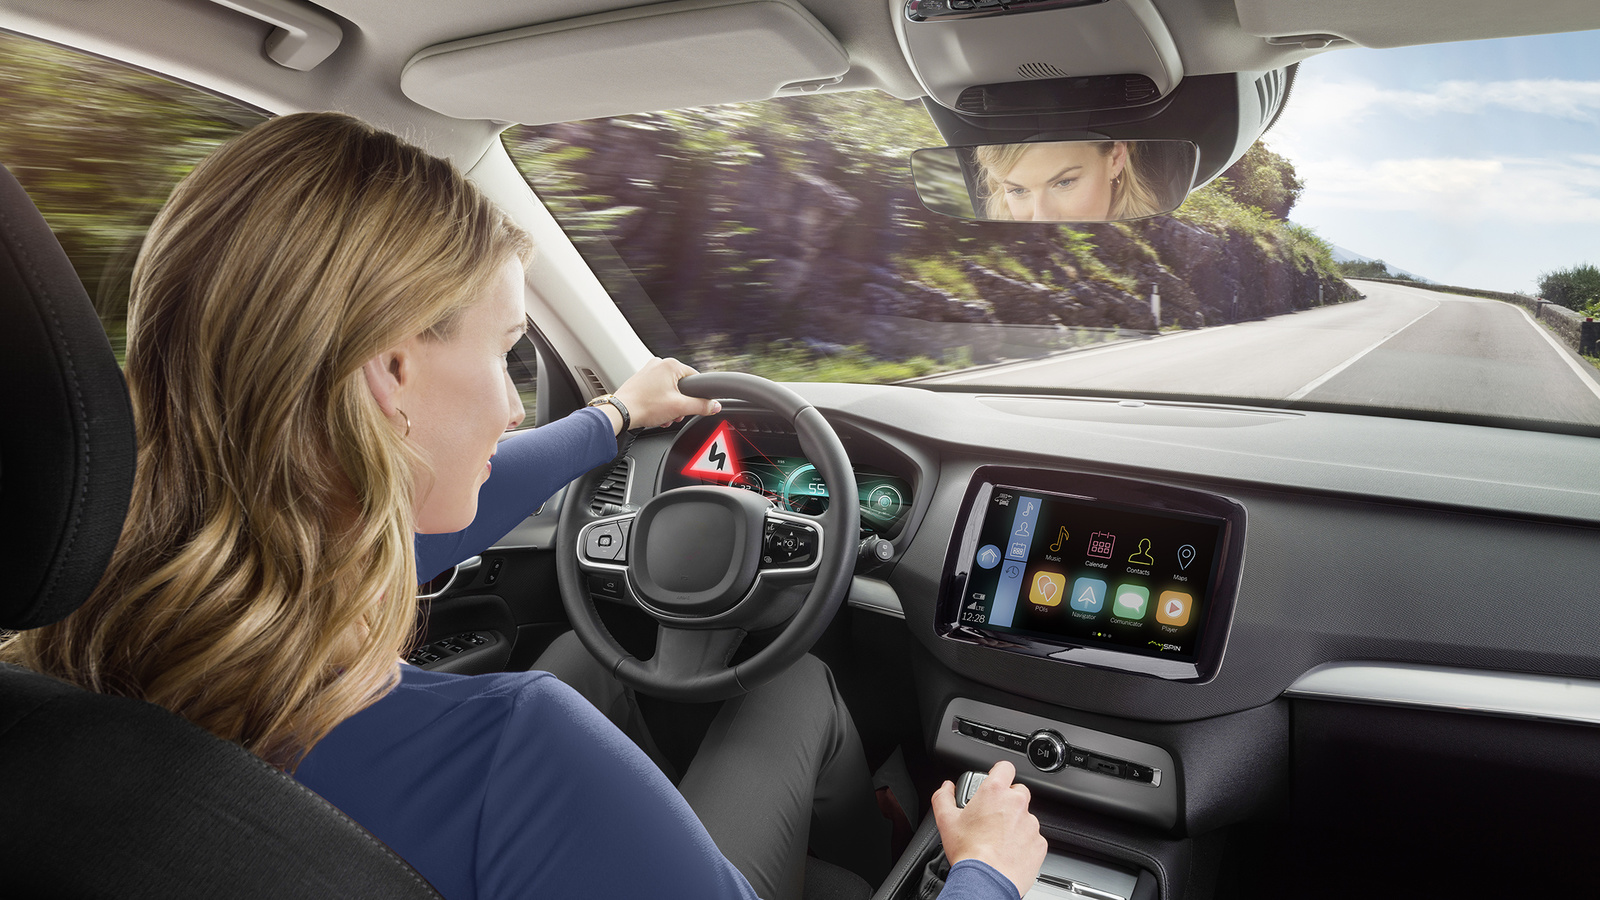 CES 2020: Bosch raises the bar when it comes to artificial intelligence